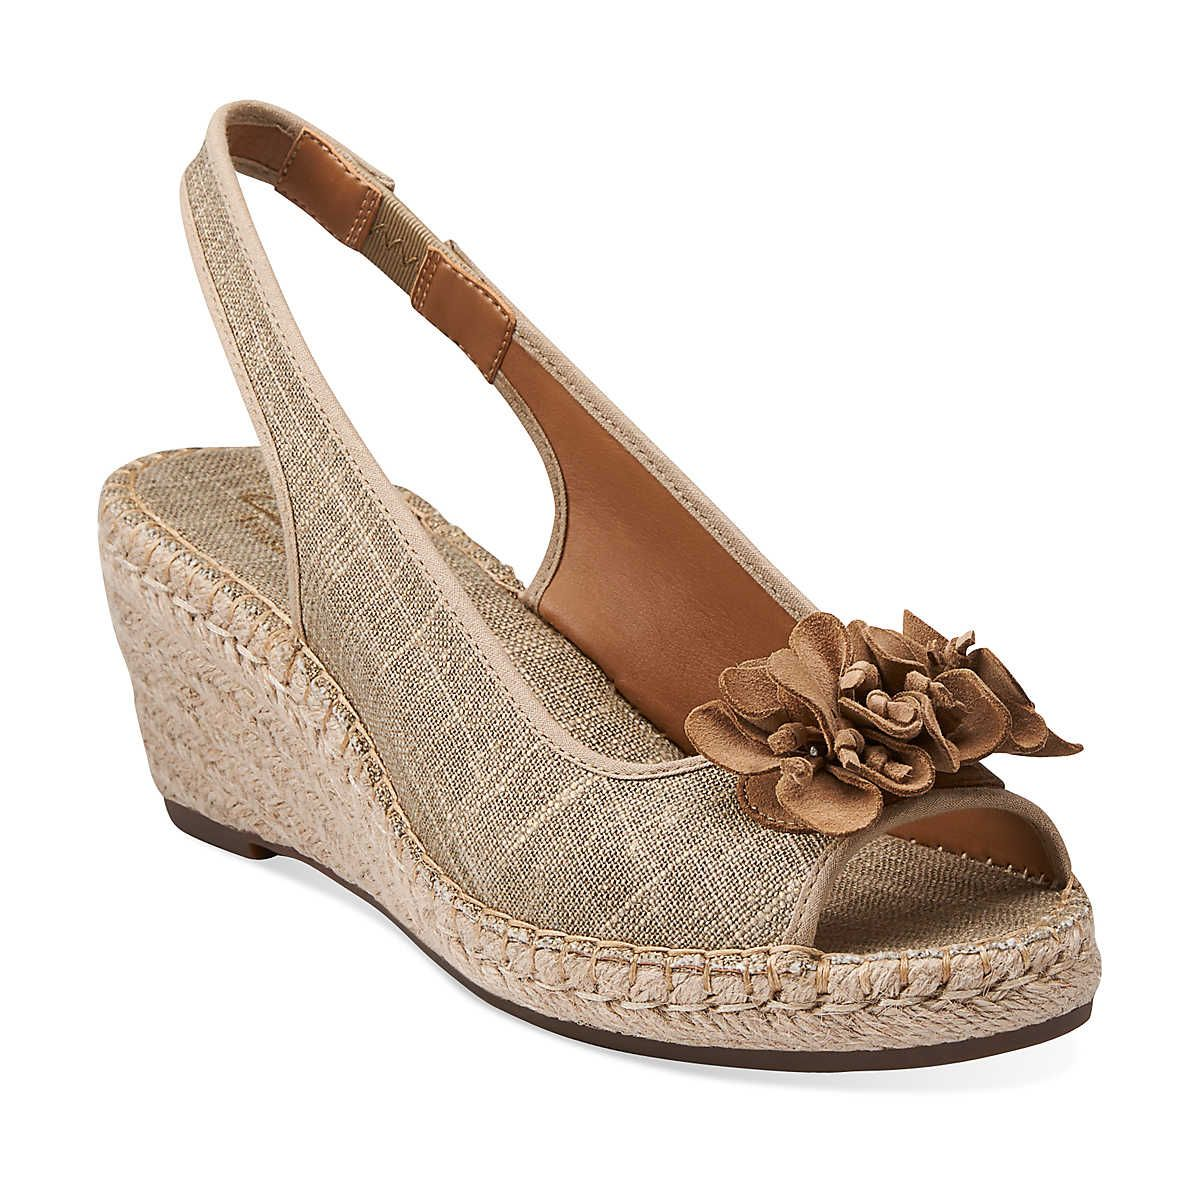 17481cdd9 Petrina Corra in Sand Beige Linen Fabric - Womens Sandals from Clarks.  Can t wait for these to arrive in the mail!